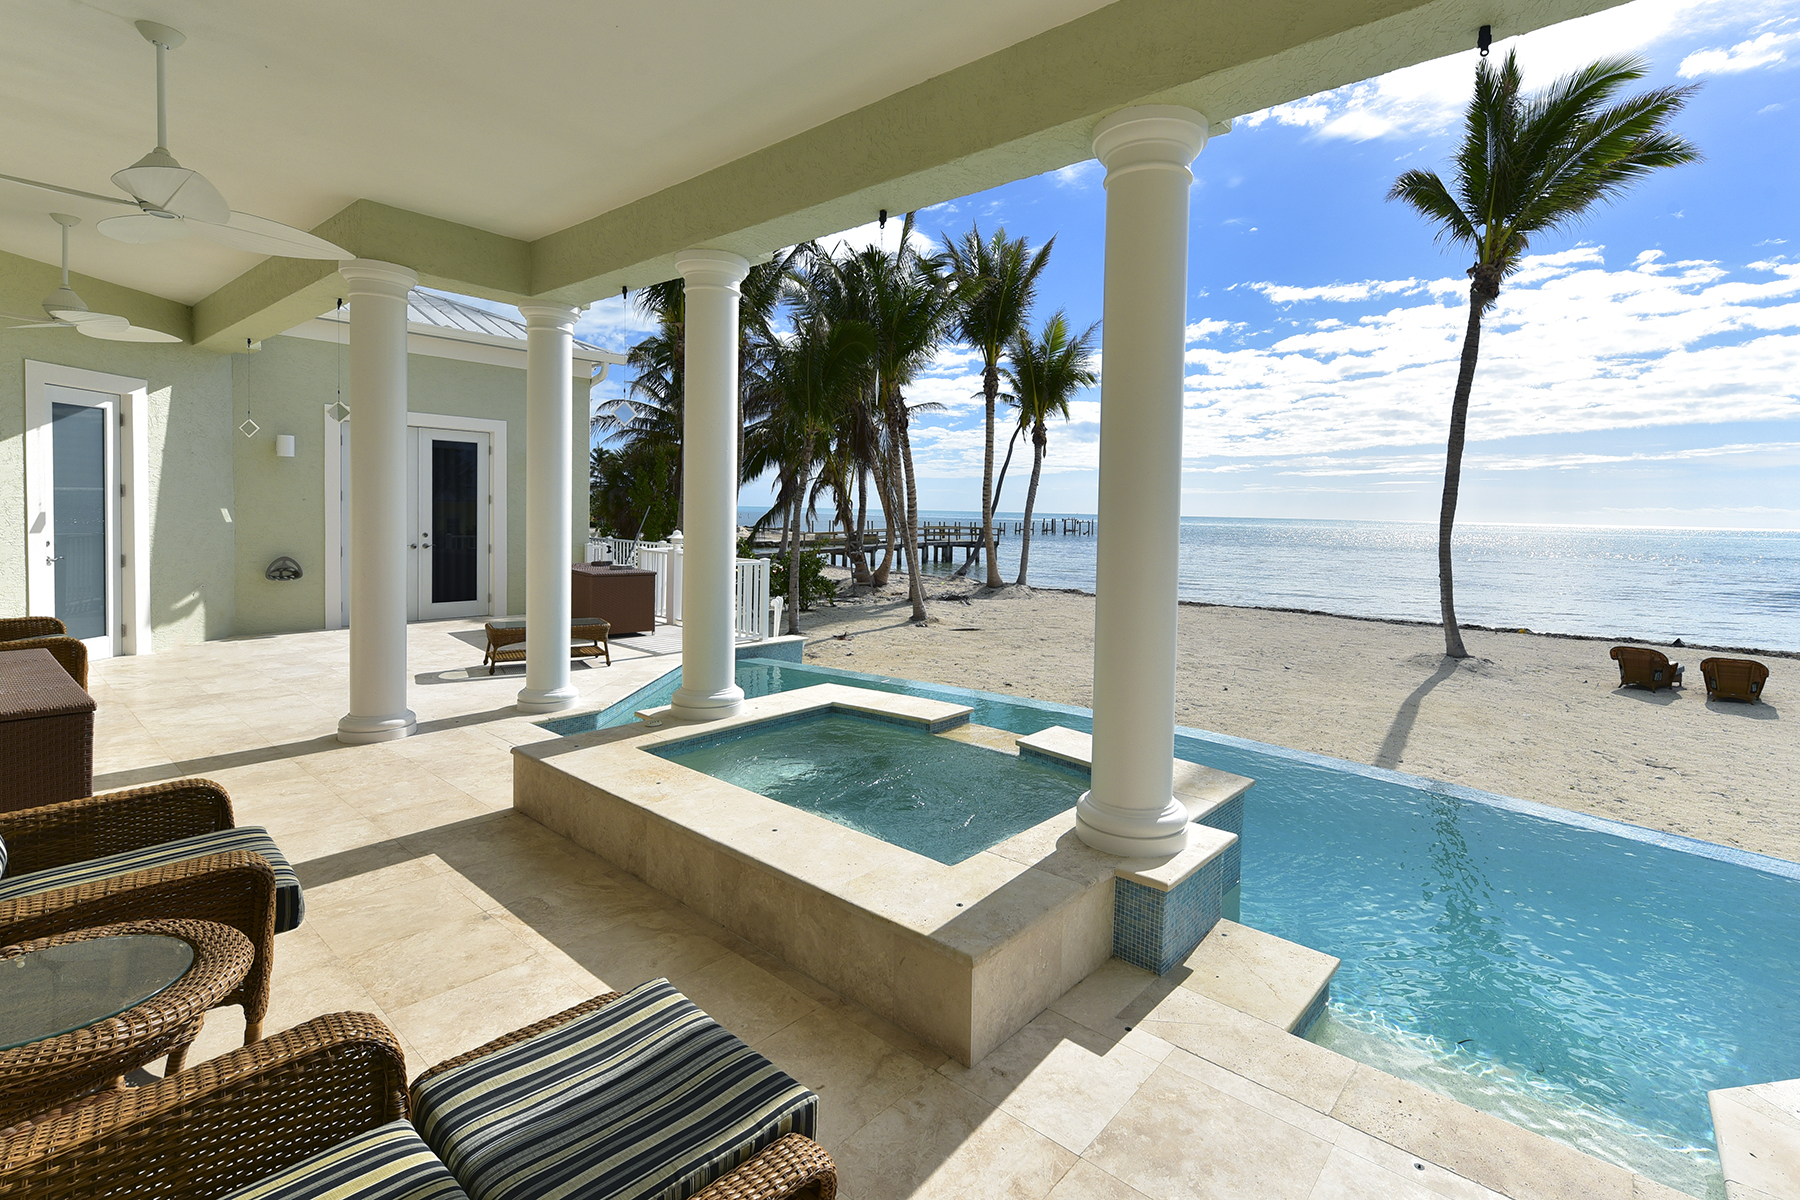 Single Family Home for Sale at Exquisite Oceanfront Estate 75931 Overseas Highway Islamorada, Florida 33036 United States